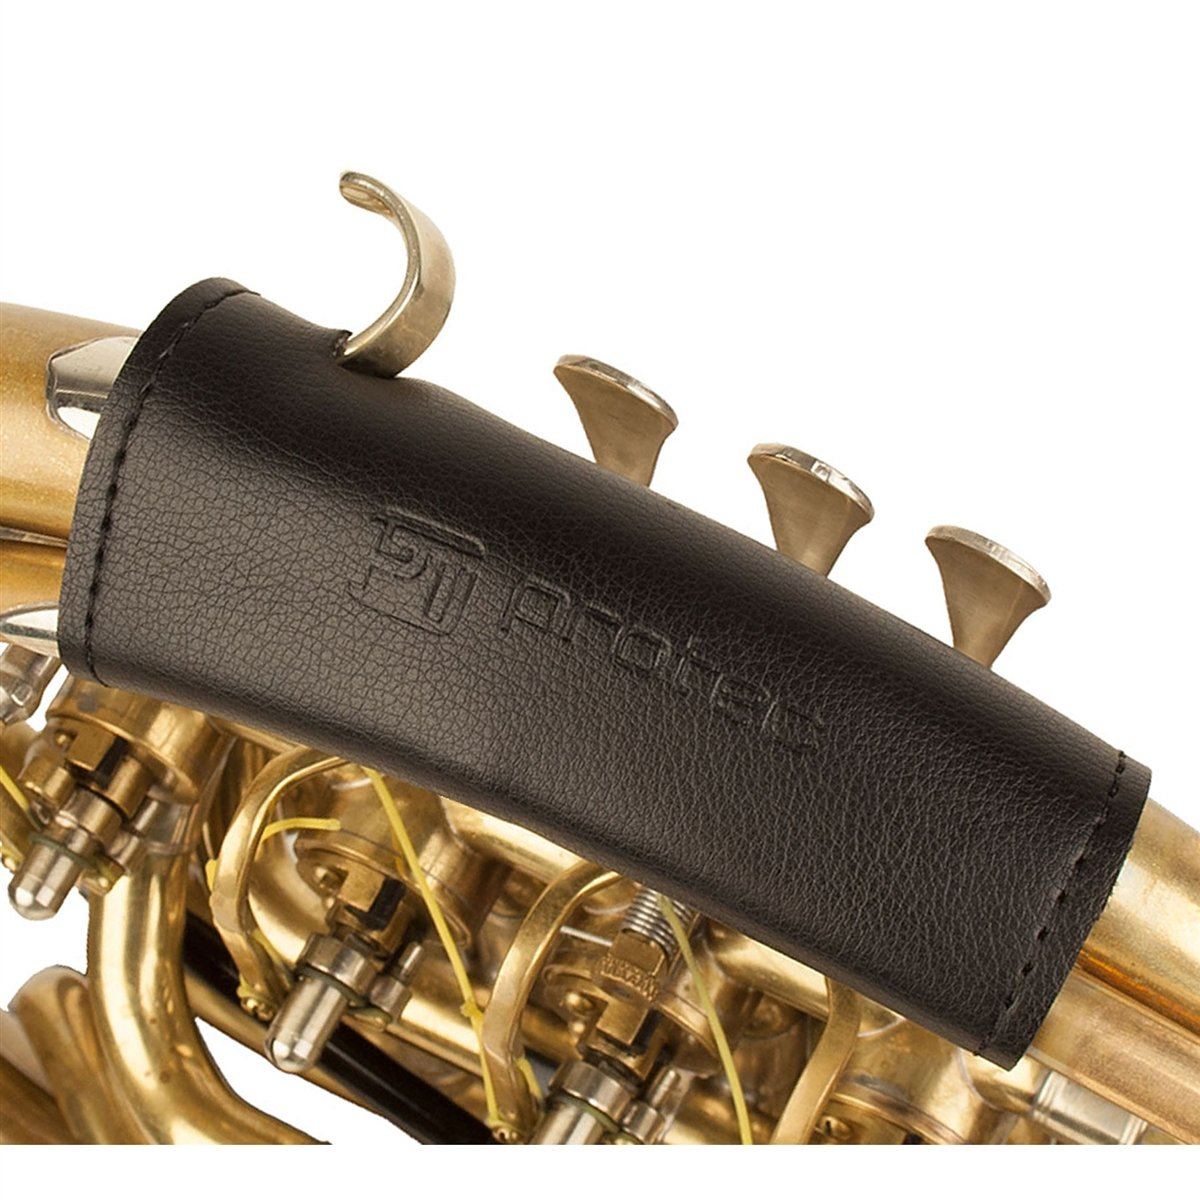 Protec - Leather Hand Guard (Small) for French Horn-Accessories-Protec-Music Elements